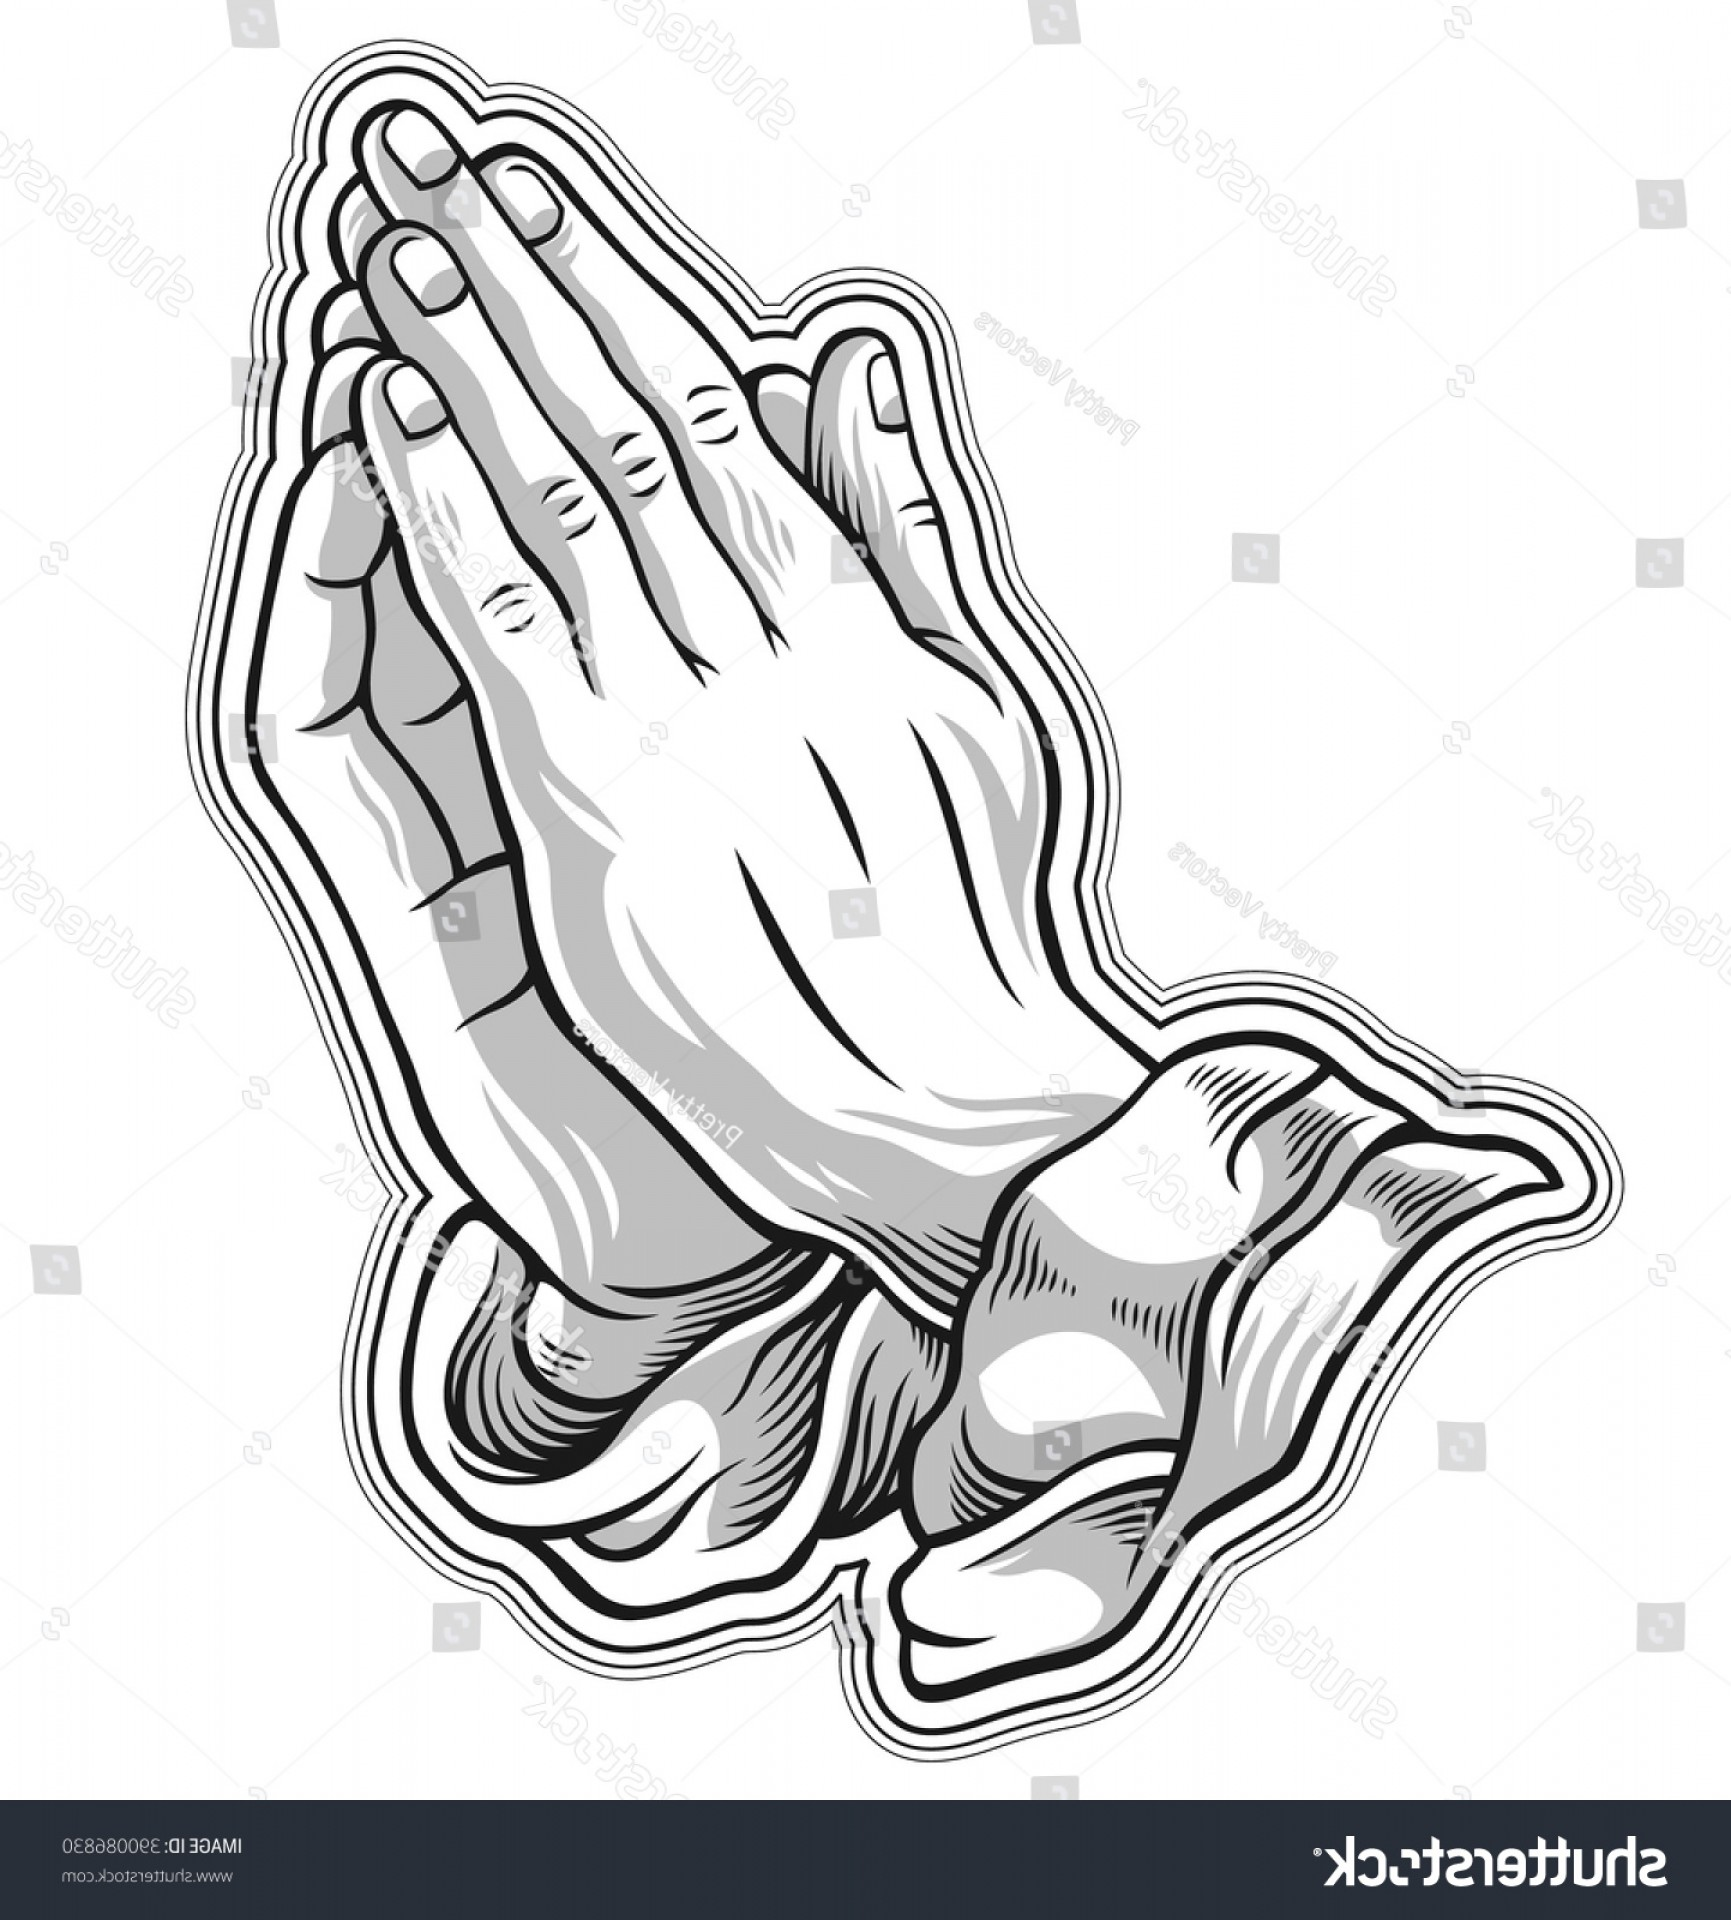 Praying Hands Vectors Shutterstock: Black White Prayer Hand Vector Illustration